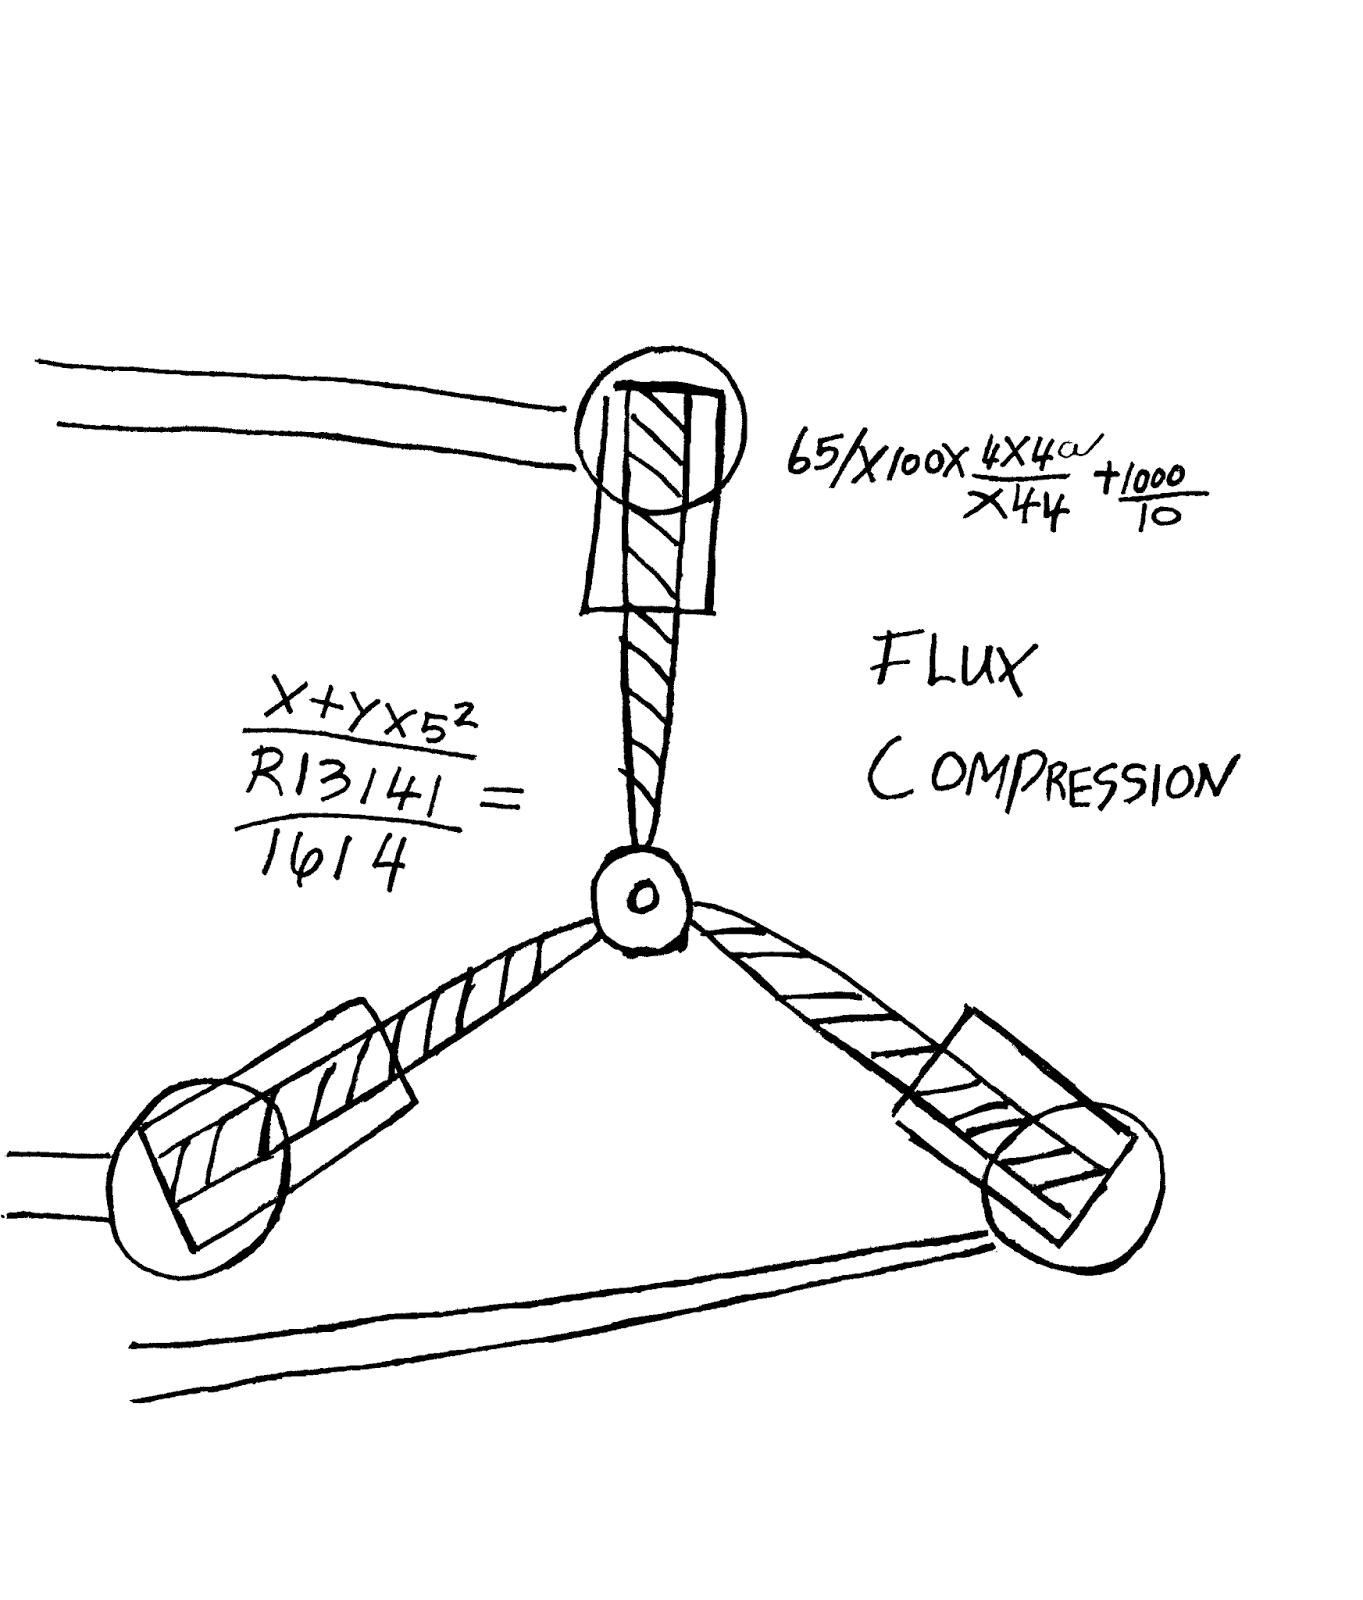 the best free capacitor drawing images download from 39 free Compressor Wire Diagram 1363x1600 amfx creations flux capacitor drawing